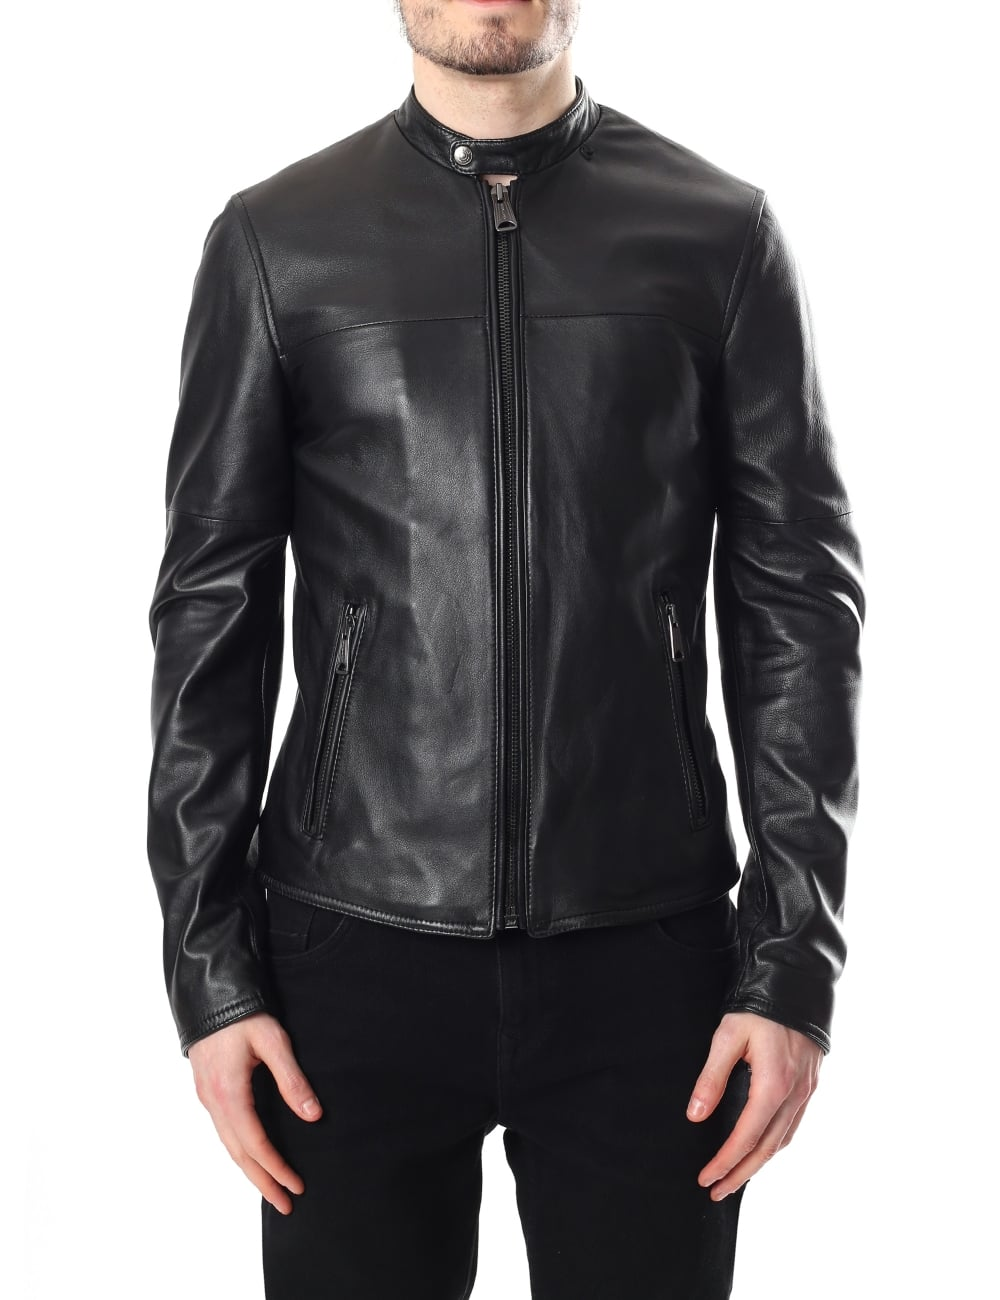 75d1e2f79ccc Replay M8782 Men s Zip Through Leather Jacket